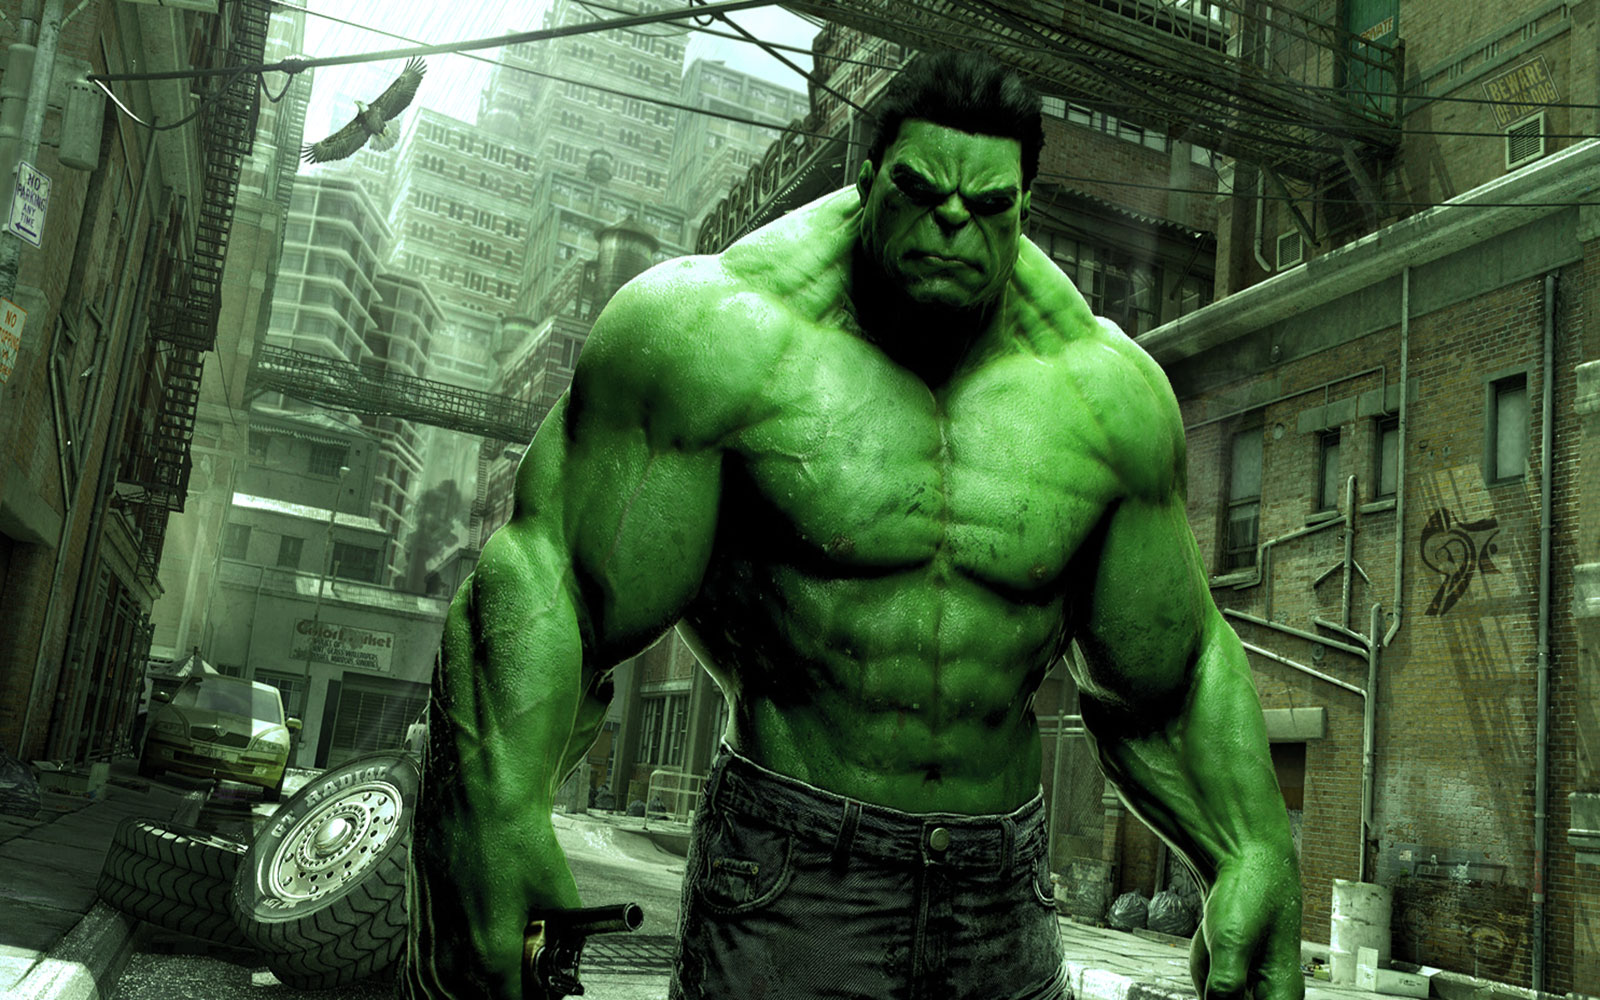 The Incredible Hulk Wallpaper and Background Image 1600x1000 1600x1000